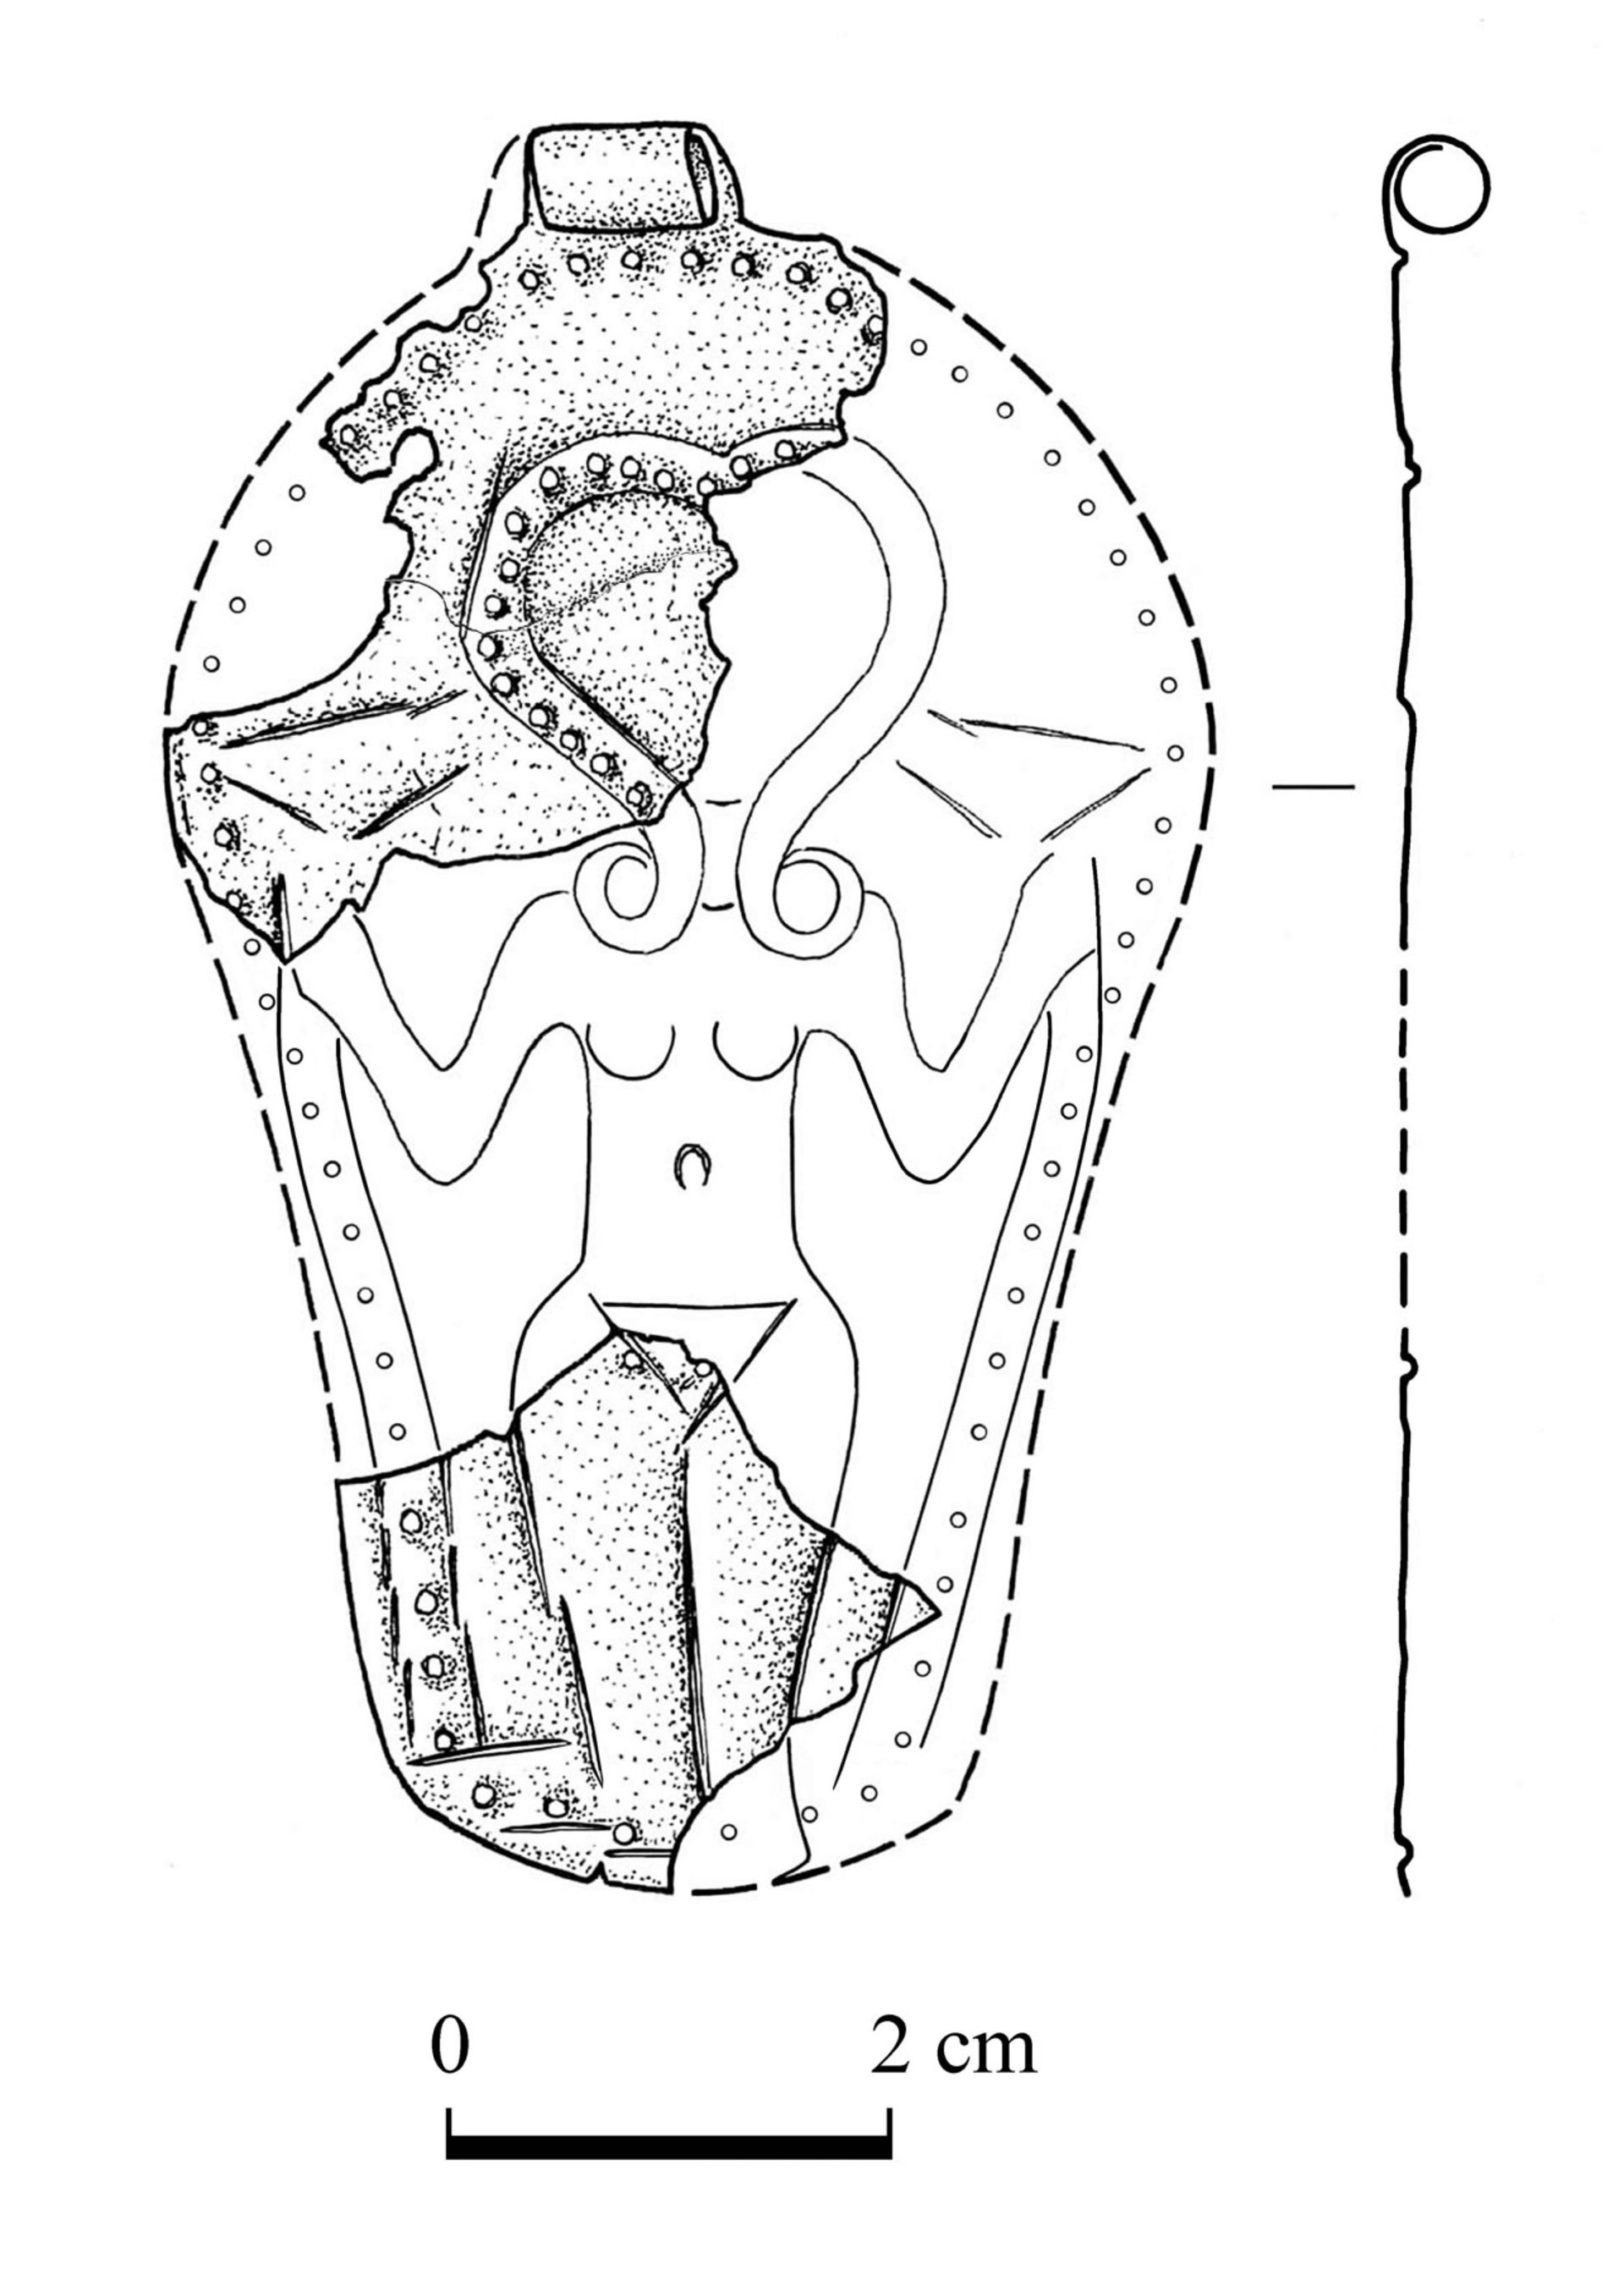 Illustration of the pendant depicting goddess with Hathor coiffure, holding lotus flowers or papyrus